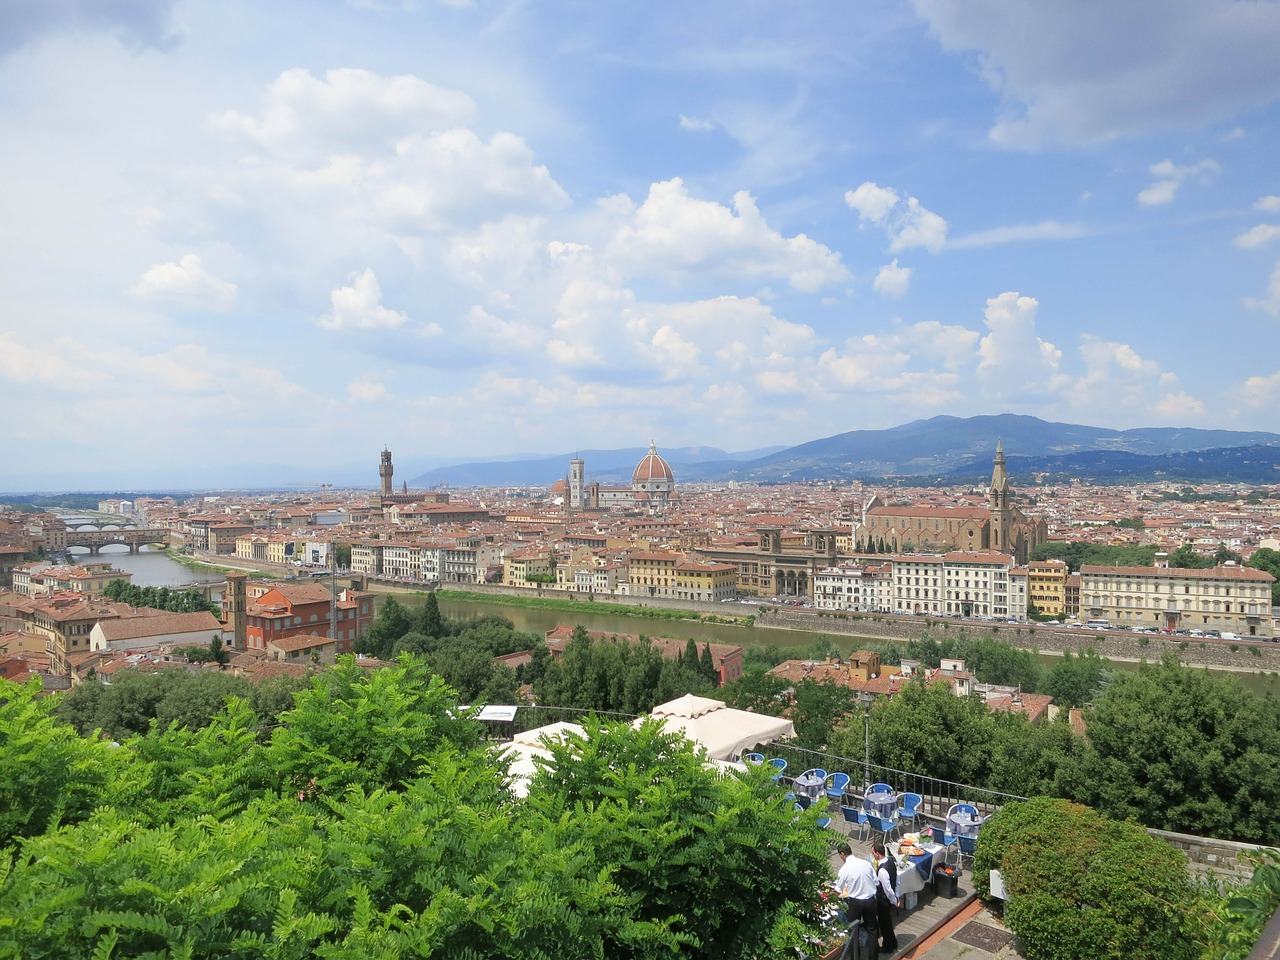 The amazing view from the Piazzale Michelangelo - Things to Do in Florence - The Trusted Traveller